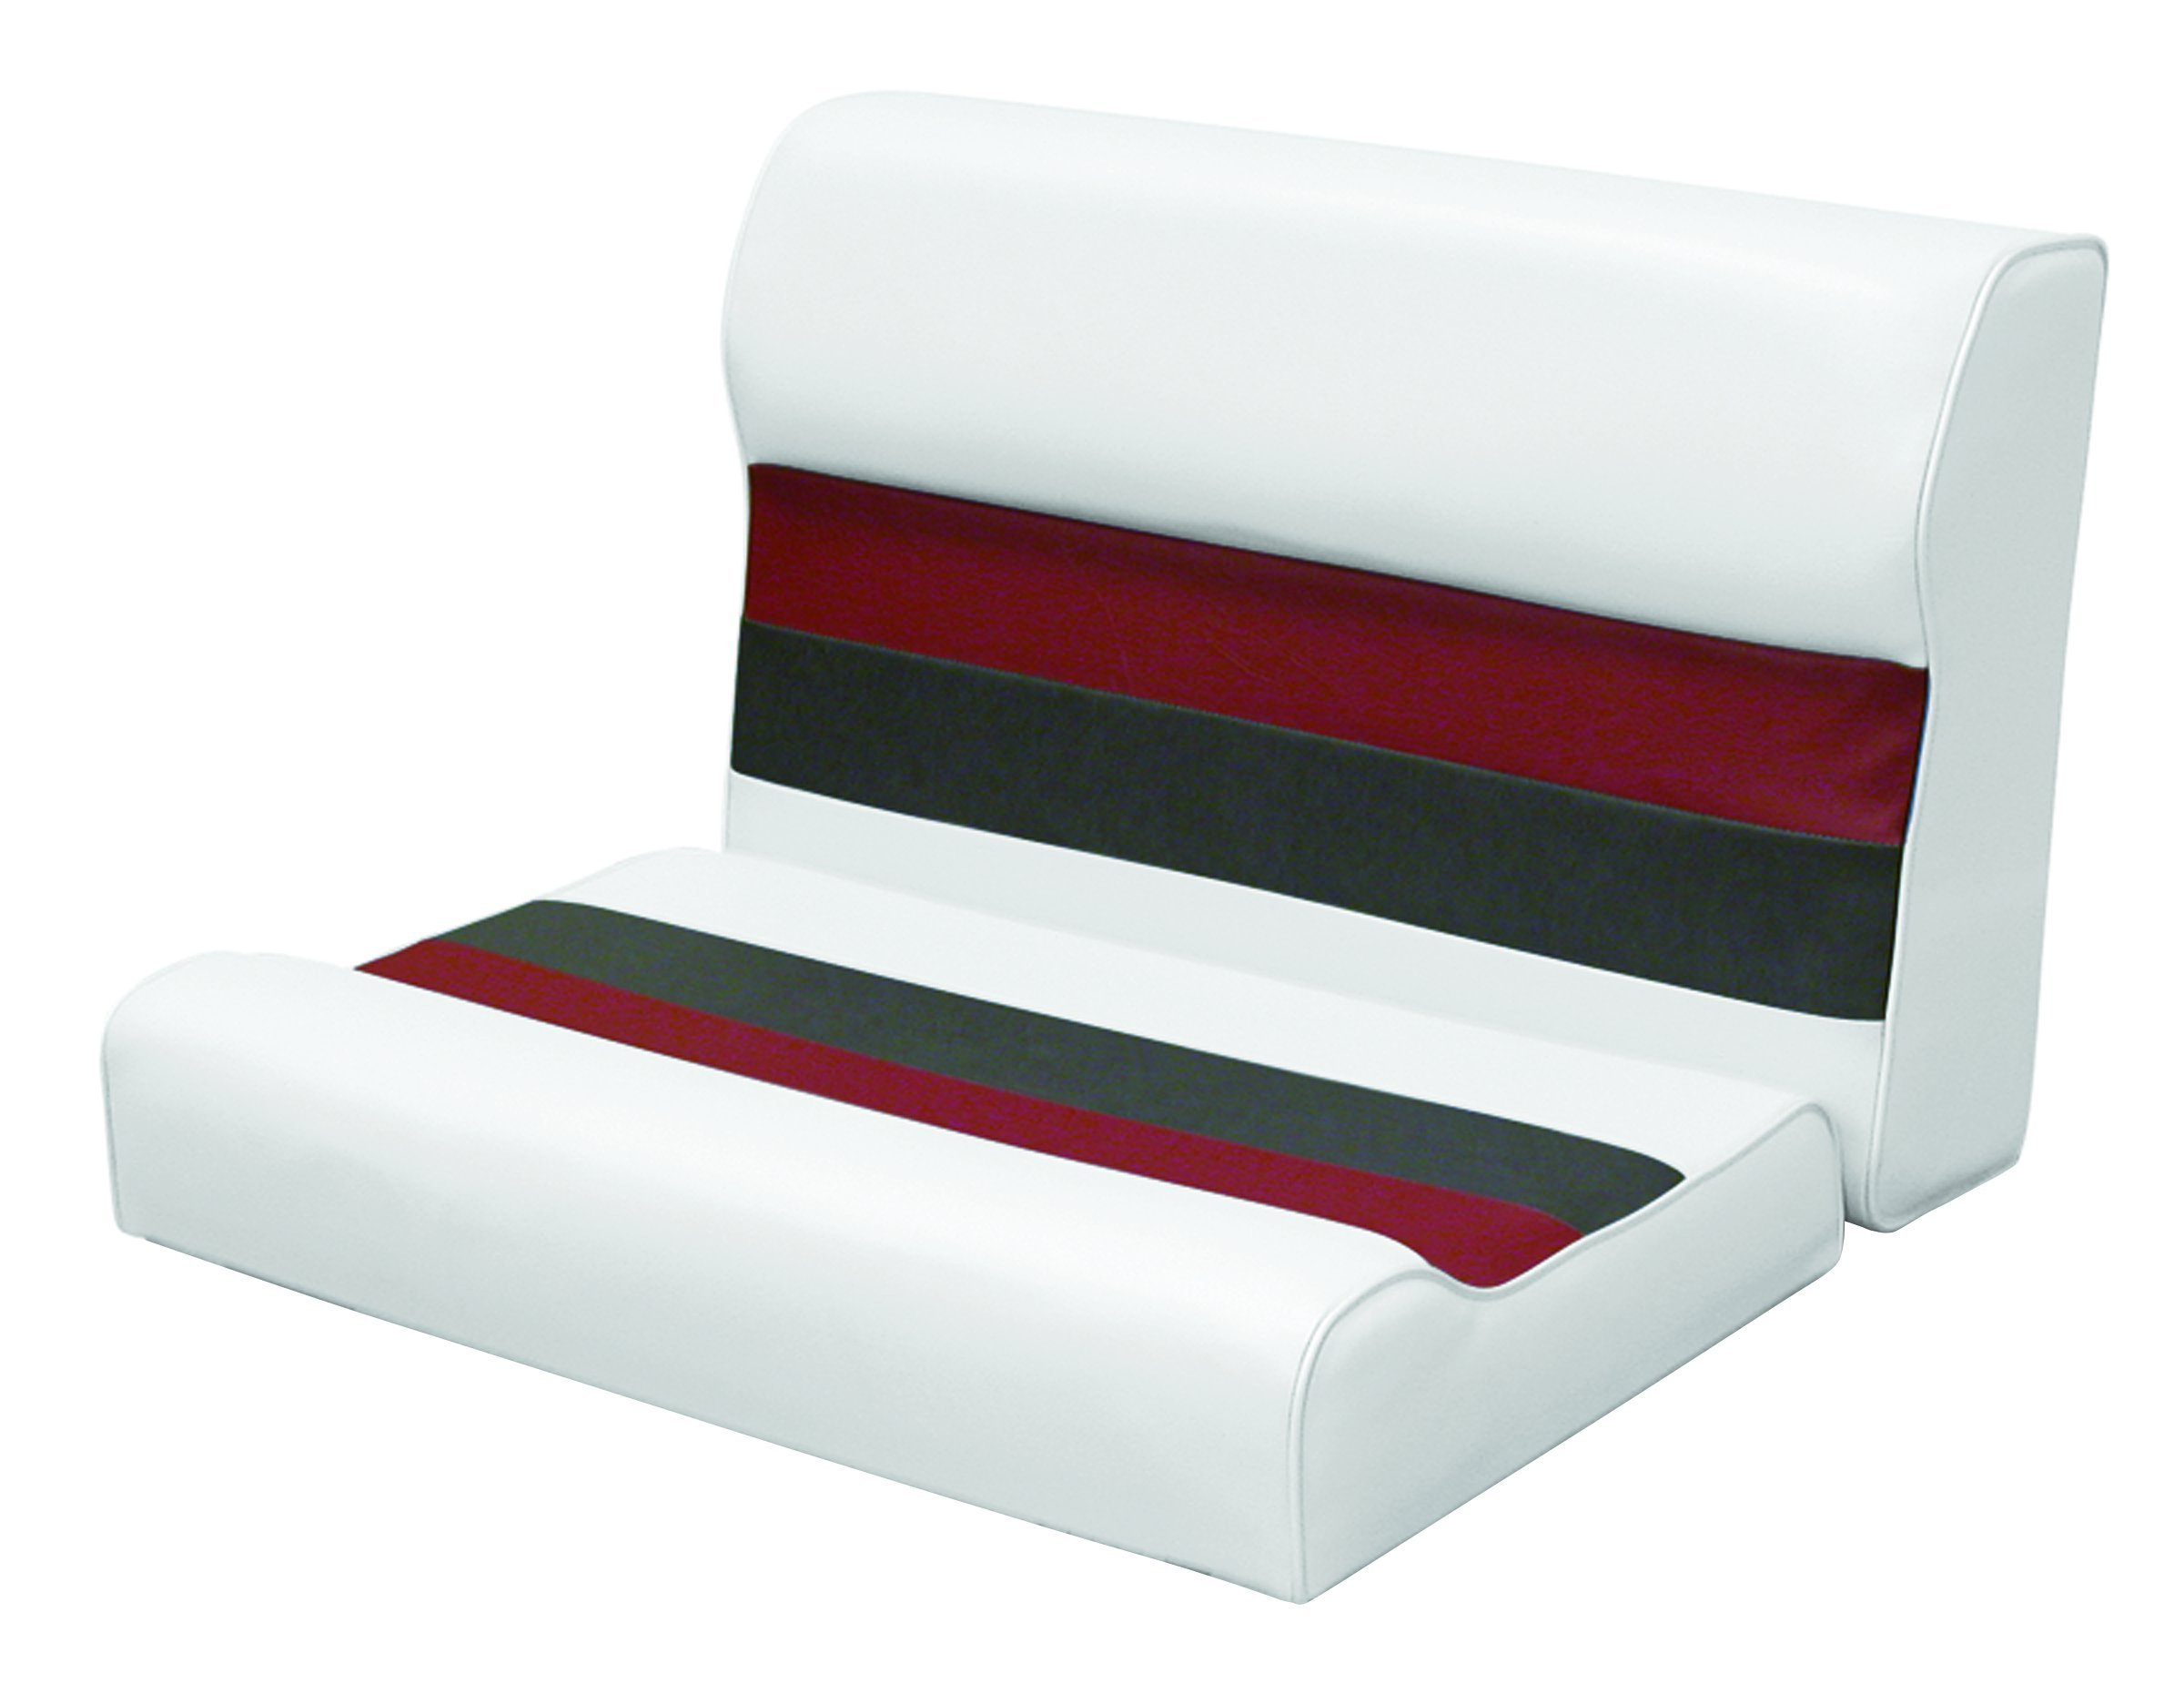 Wise 28-Inch Cushion Only Pontoon Bench Seat, White/Charcoal/Red